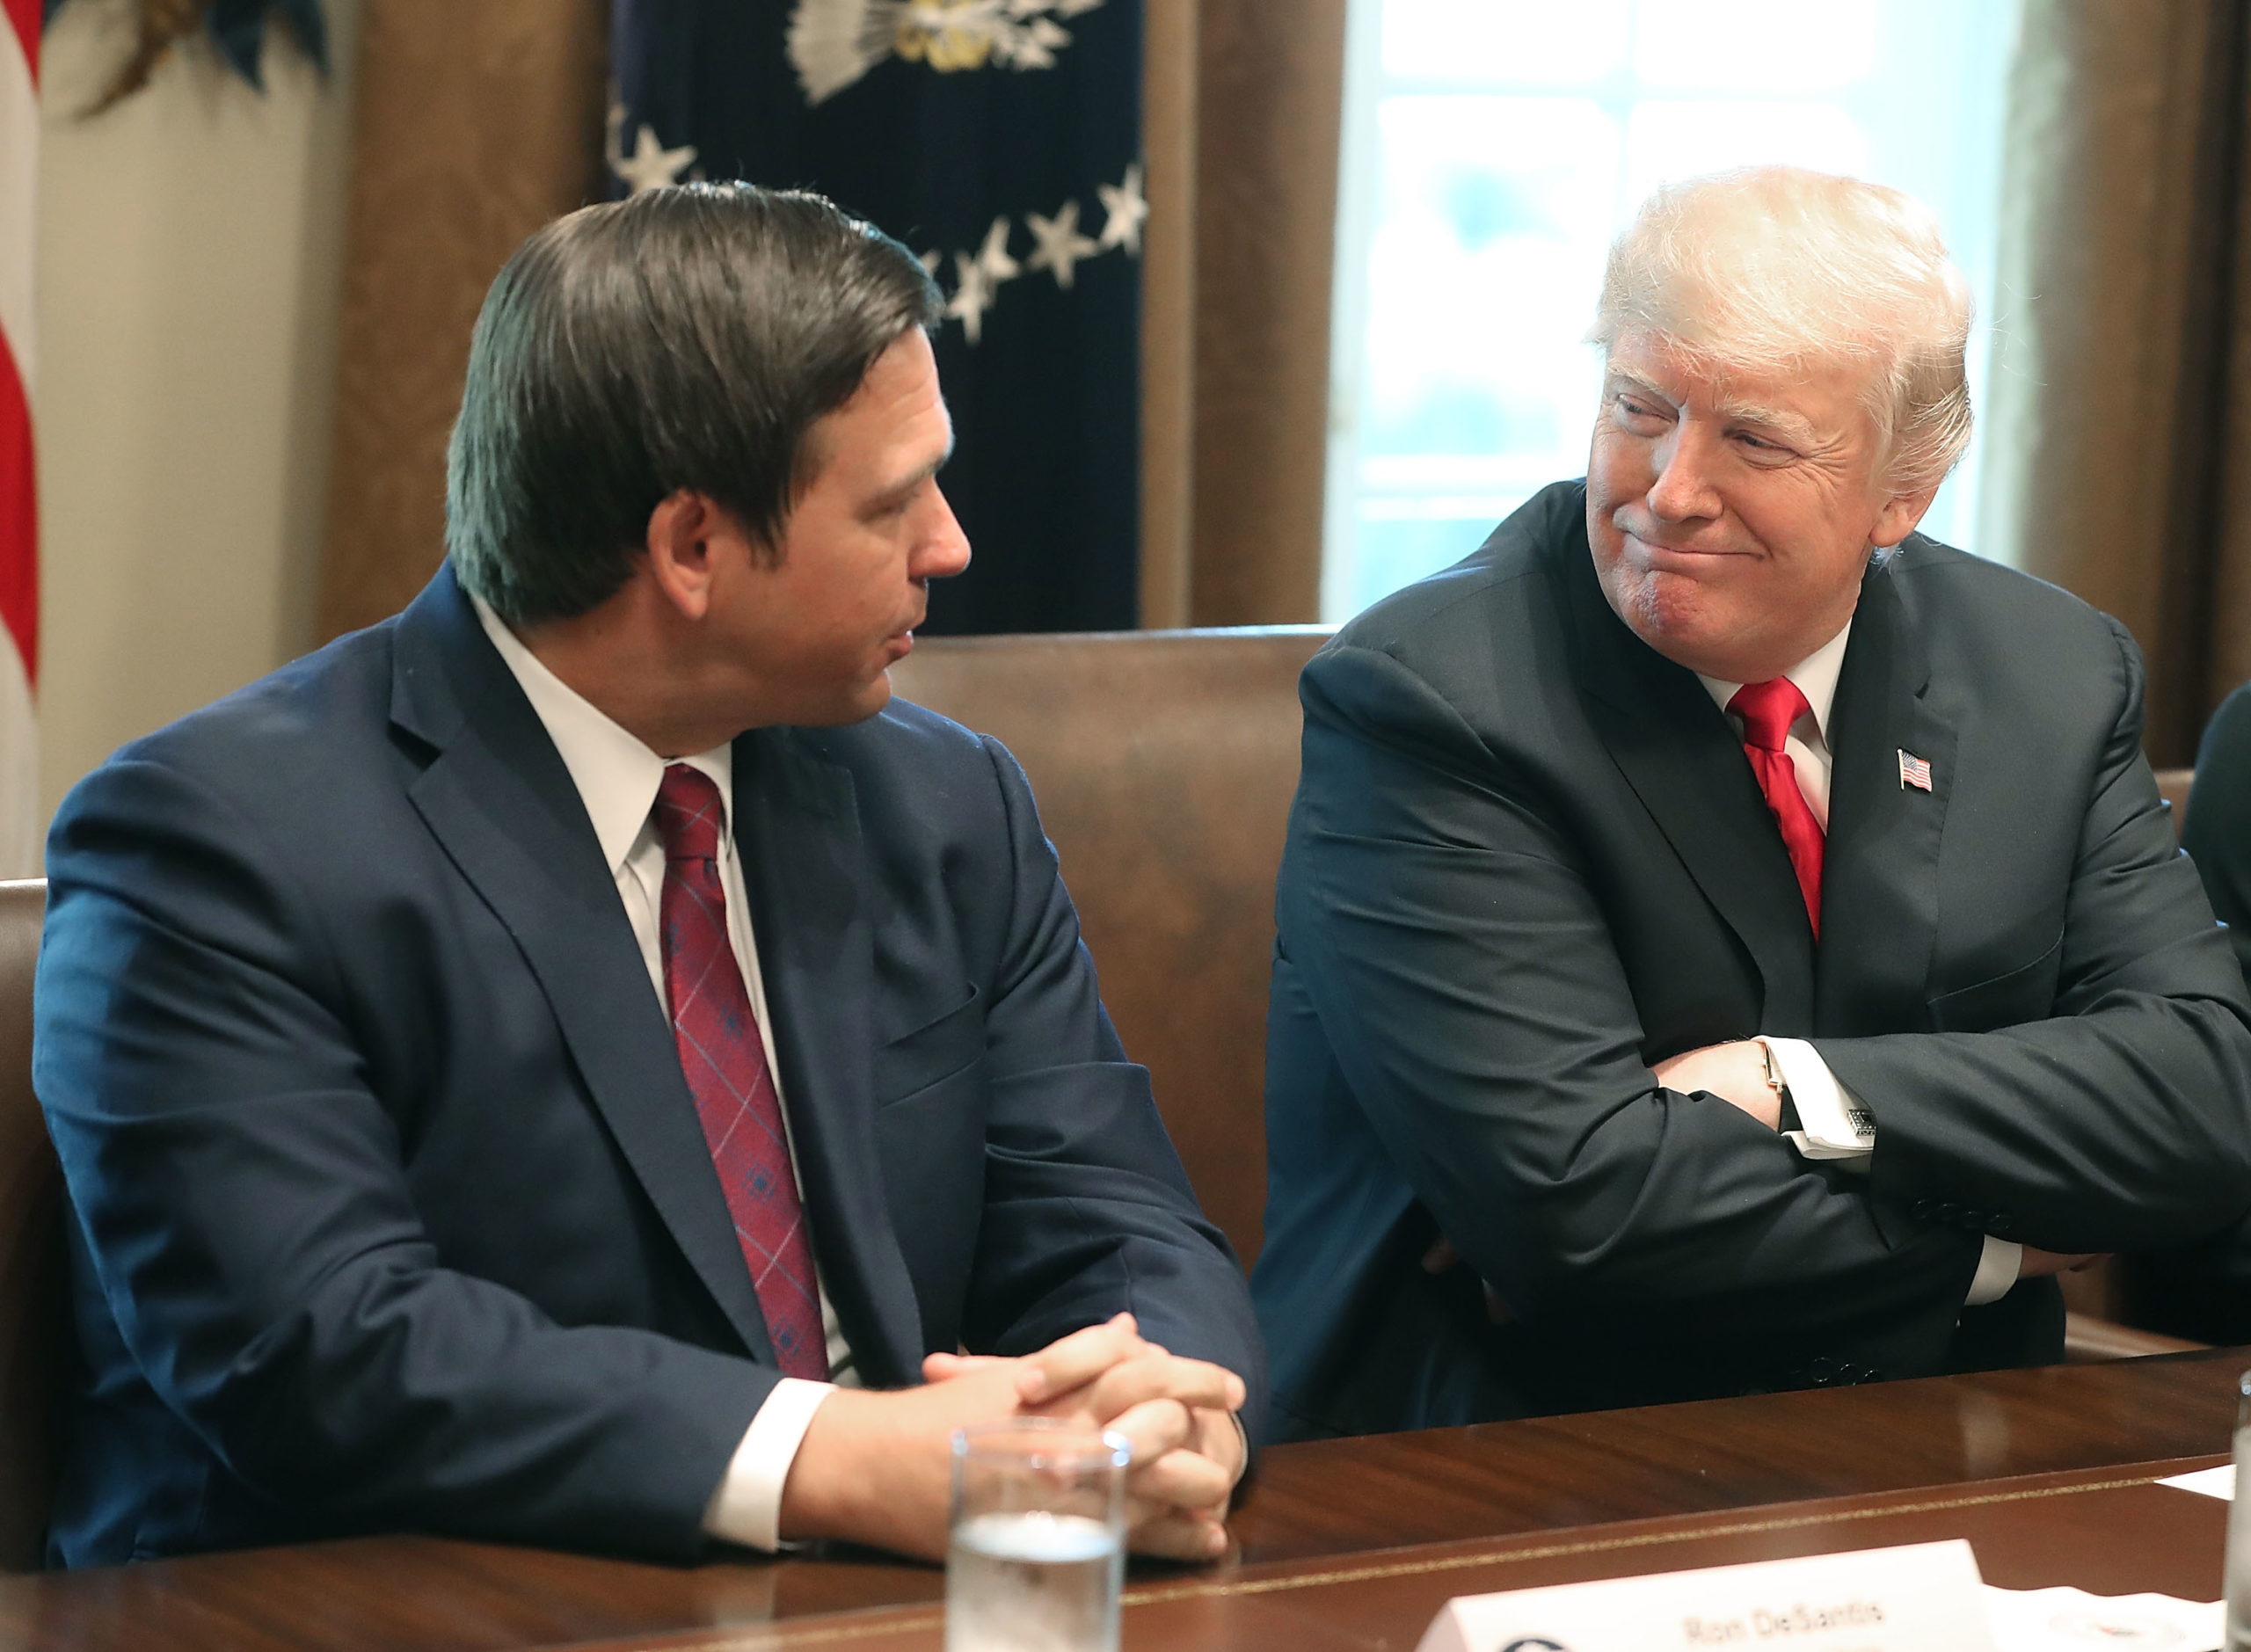 WASHINGTON, DC - DECEMBER 13: Florida Governor-elect Ron DeSantis (R) sits next to U.S. President Donald Trump during a meeting with Governors elects in the Cabinet Room at the White House on December 13, 2018 in Washington, DC. (Photo by Mark Wilson/Getty Images)